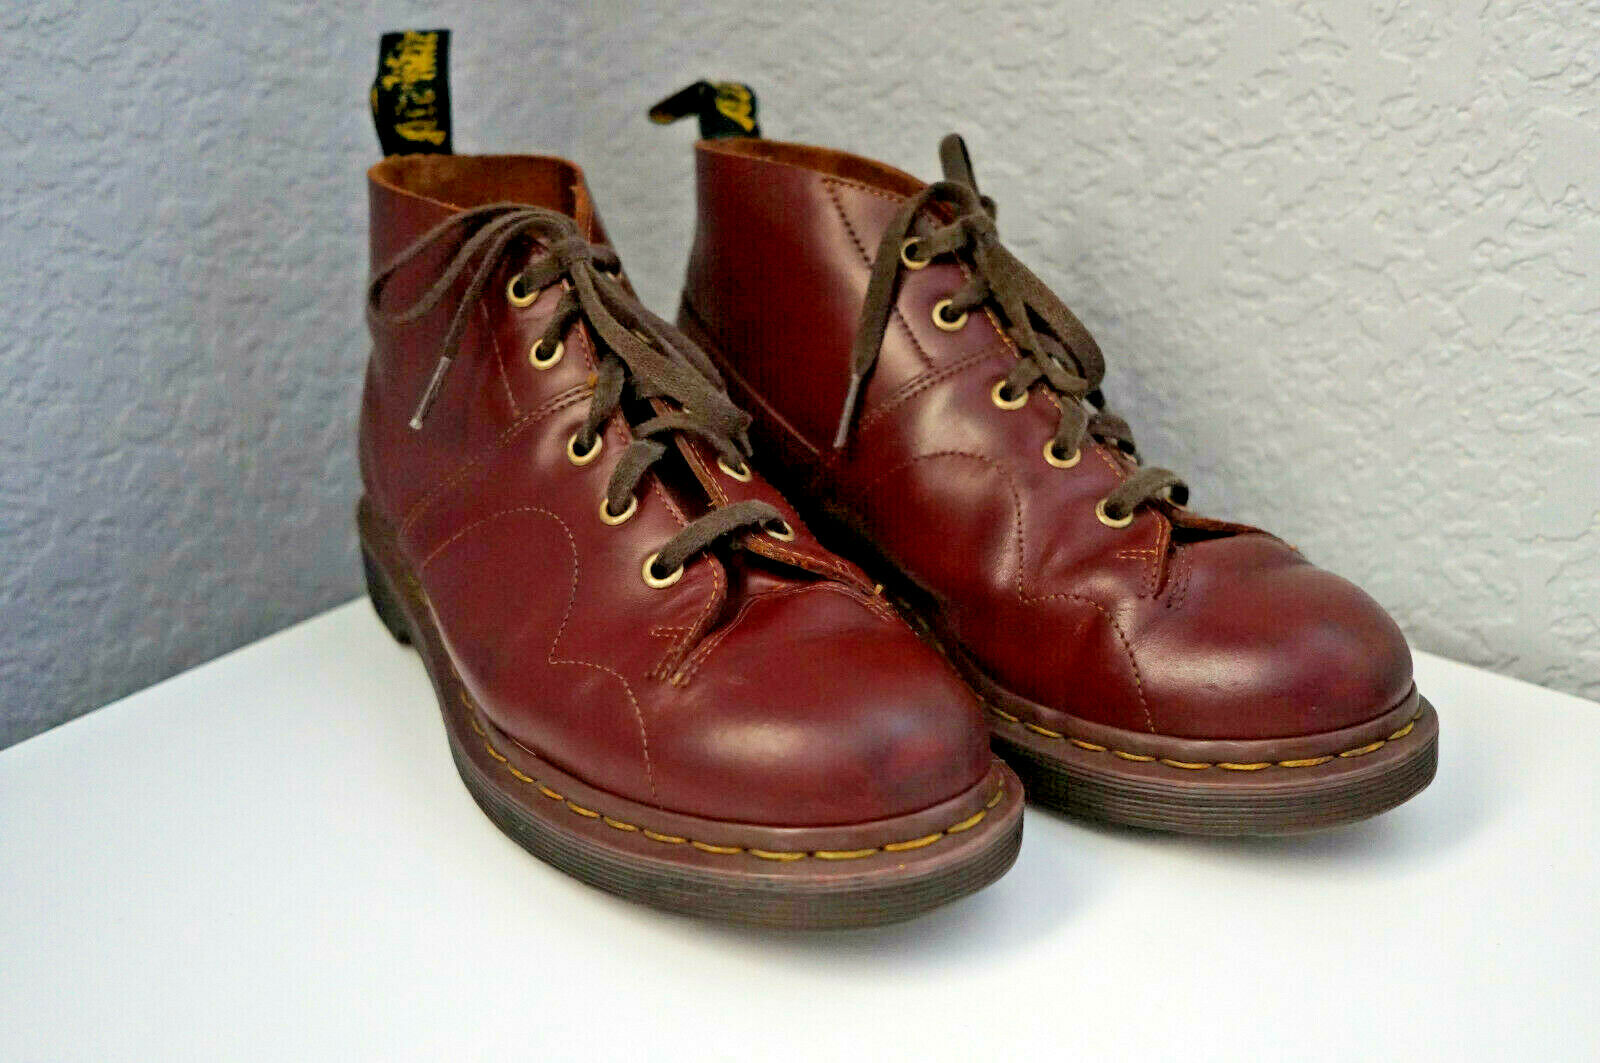 Male Panda cartella  Dr. Martens Church Monkey Boot 4 M Oxblood Vintage Smooth for sale online |  eBay